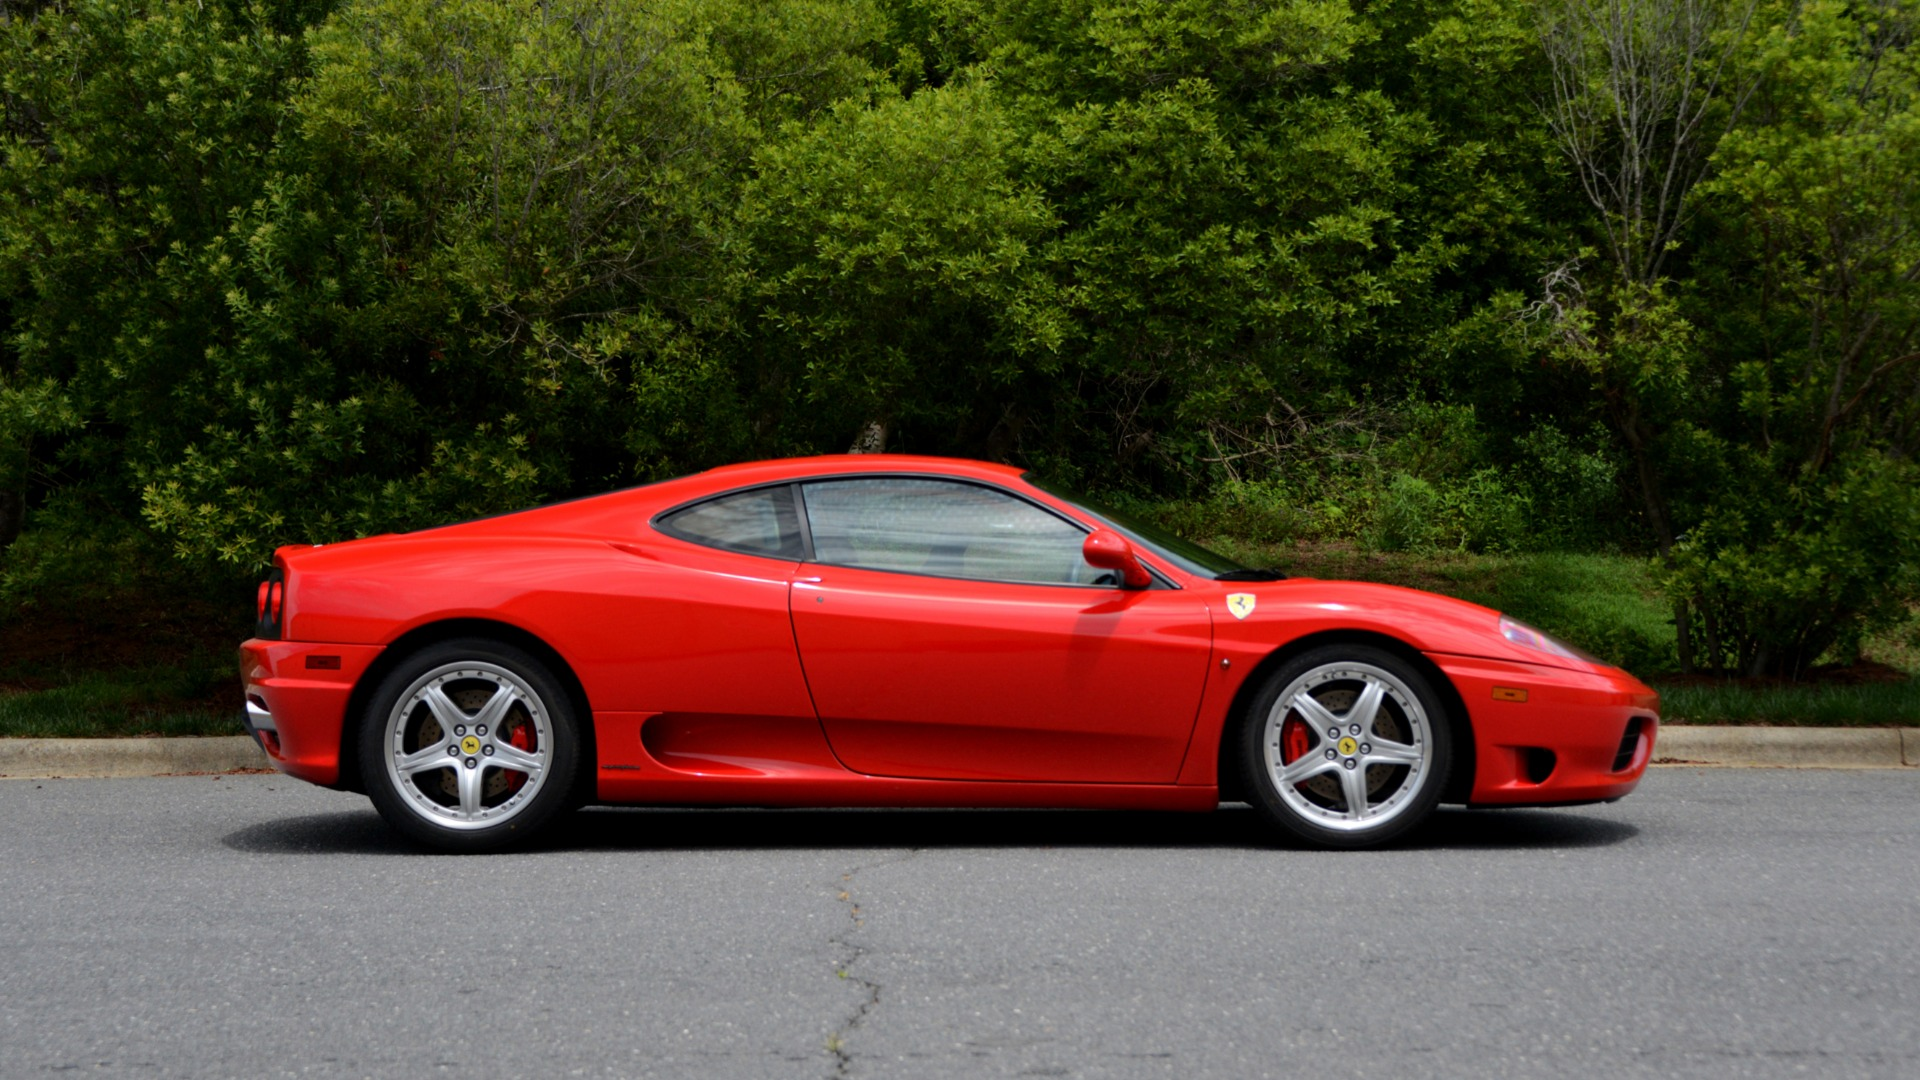 Used 2004 Ferrari 360 MODENA COUPE / GATED 6-SPD MANUAL / SUNROOF / LOW MILES for sale Sold at Formula Imports in Charlotte NC 28227 5